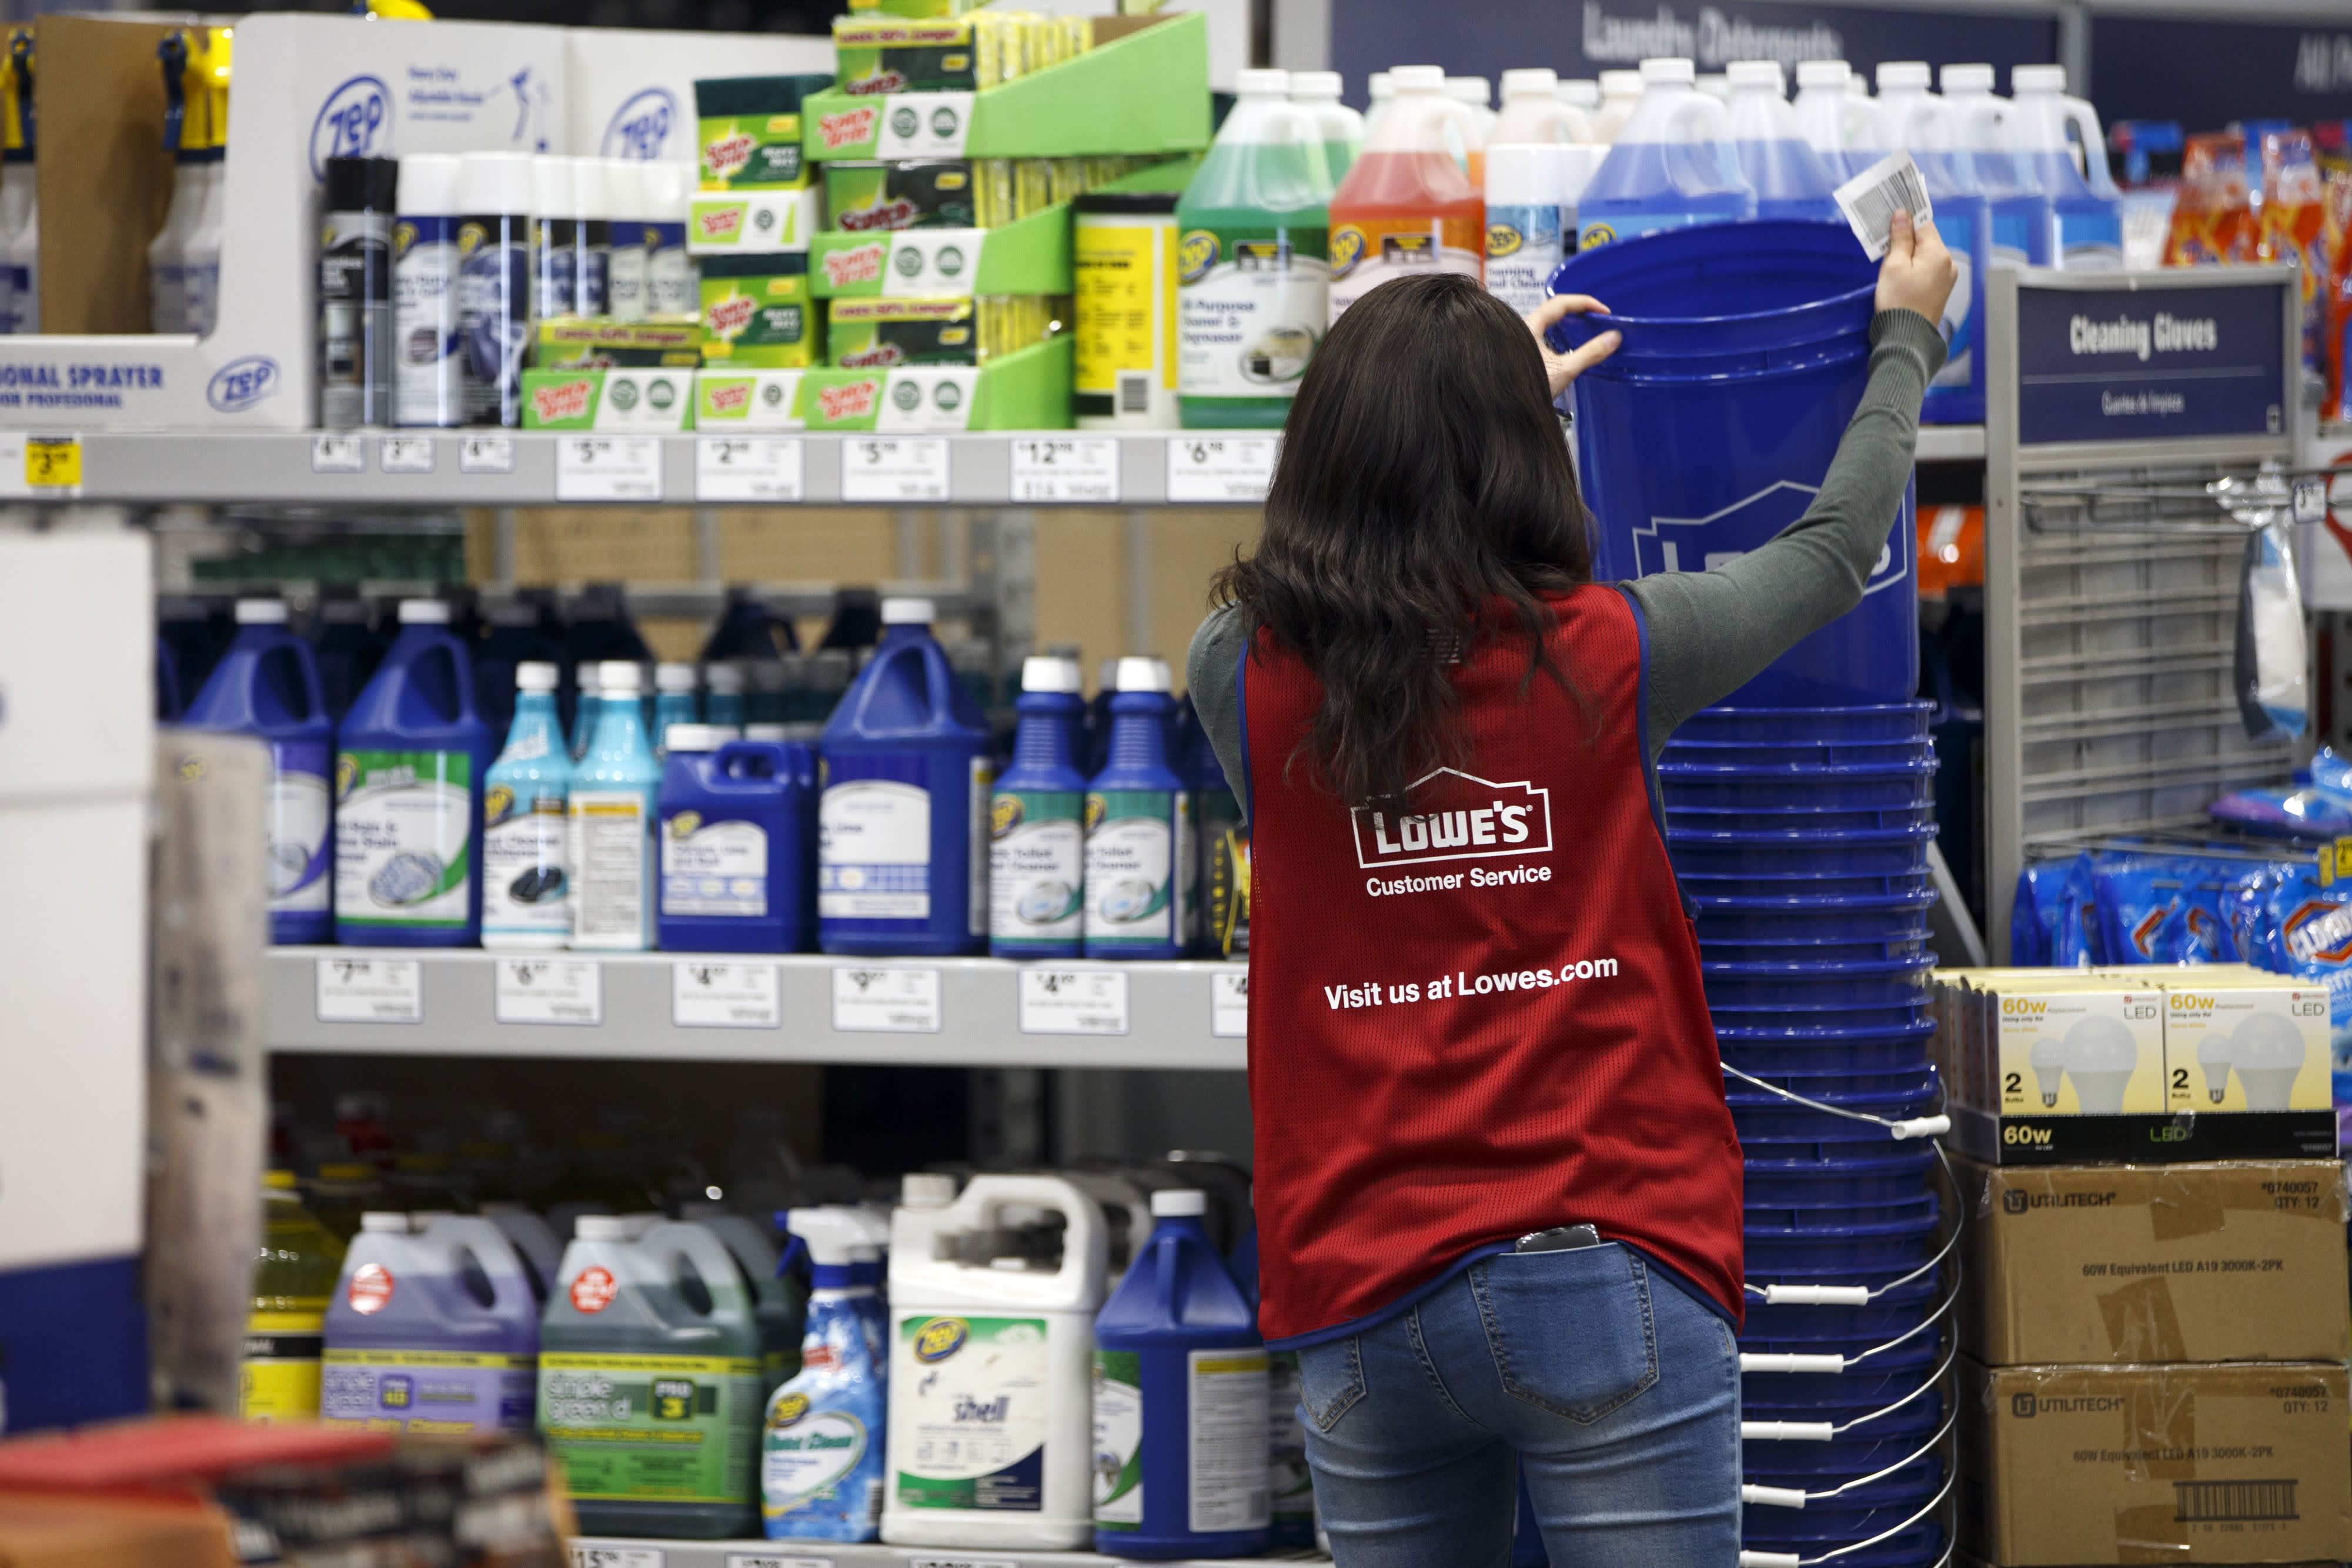 Lowe's lays off thousands of workers in US stores